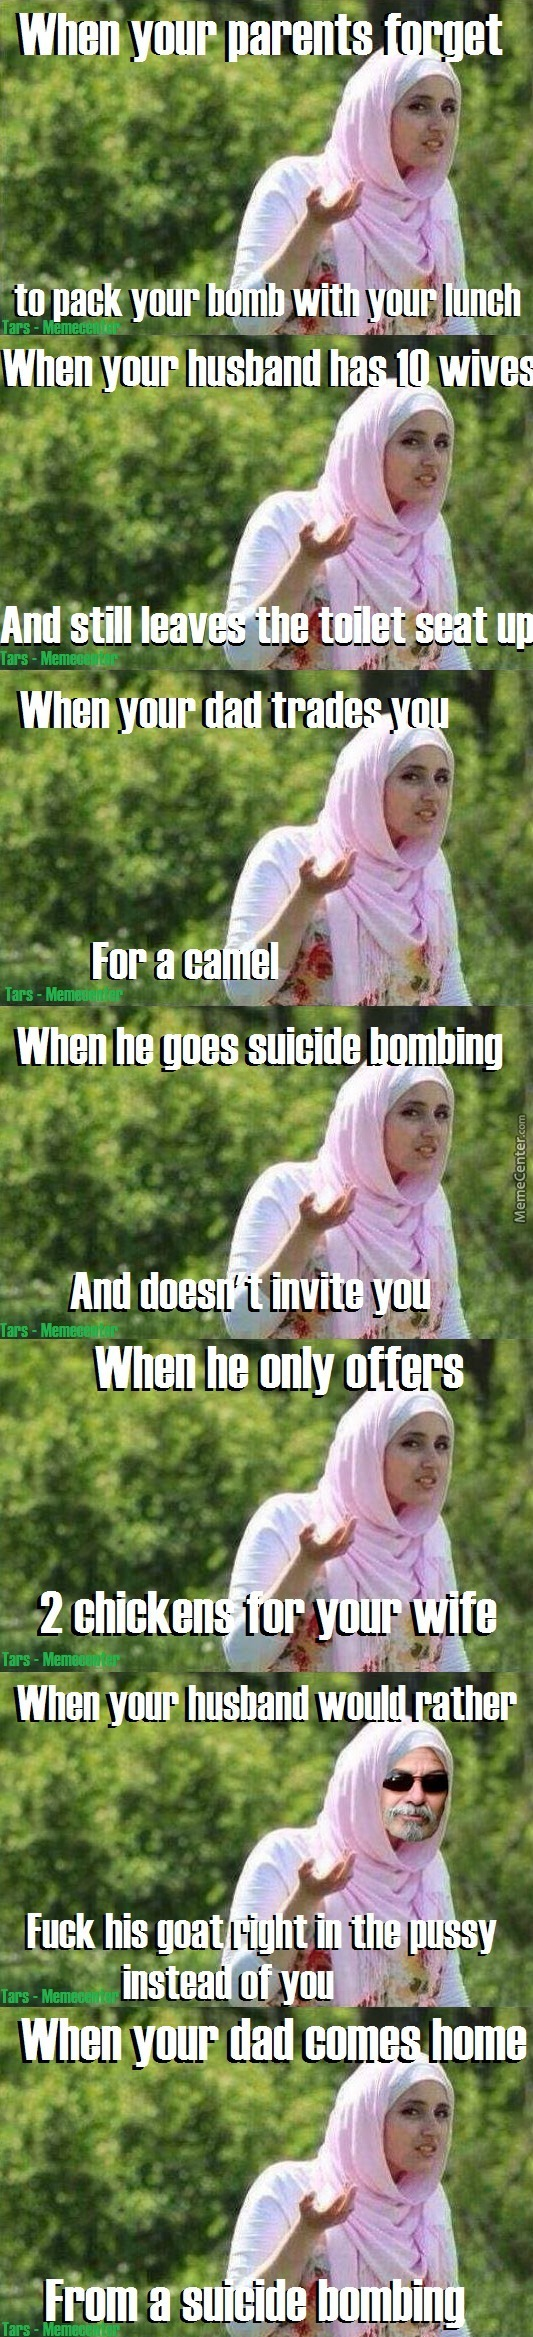 Confused Muslim Girl (No Racism Implied)